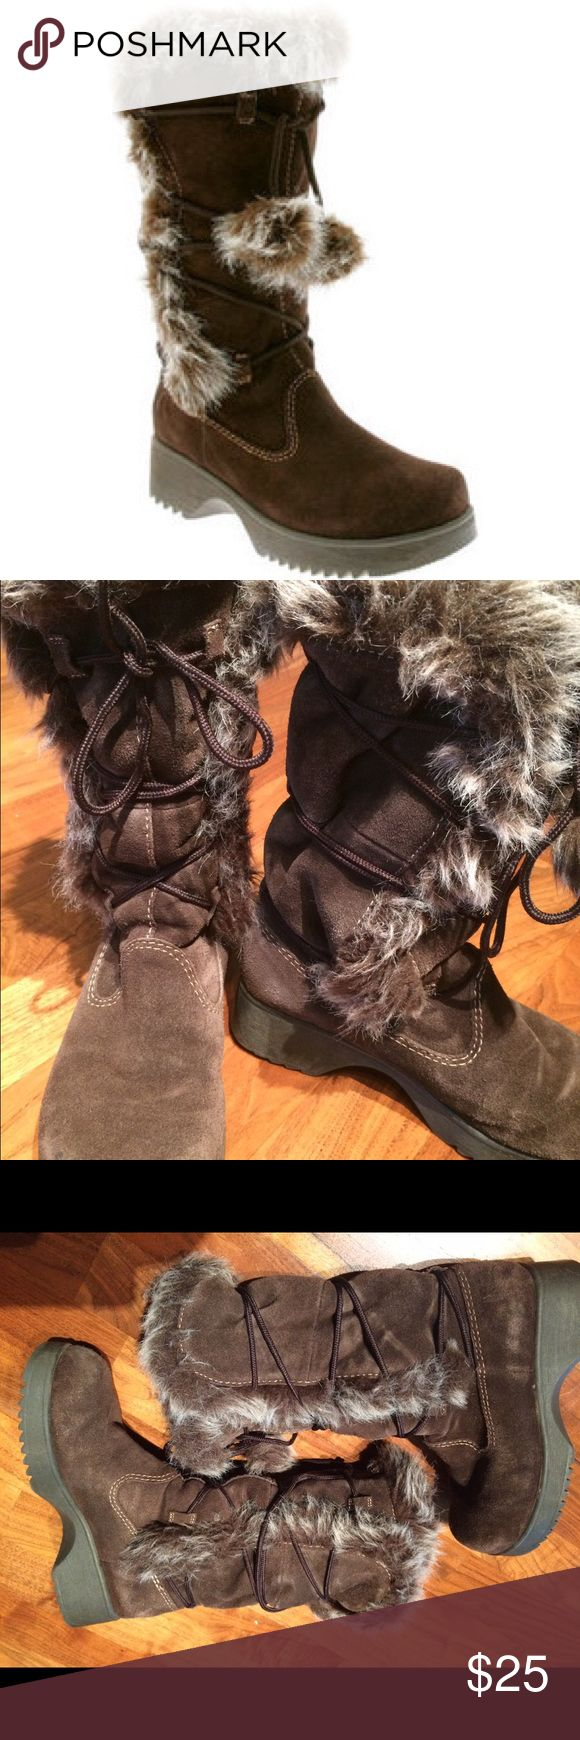 "Report Olympic suede fur snow boots 6.5 Great condition, barely worn twice on dry cement, these are warm and cute for the winter months. Faux fur and genuine leather, these will last you for the years to come.  Thick rubber soles keep you from slipping on wet ground, 3/4"" front and 1.5"" heel thickness. Mid-calf height. Runs a tad larger to accommodate thick socks. Report Shoes Winter & Rain Boots"